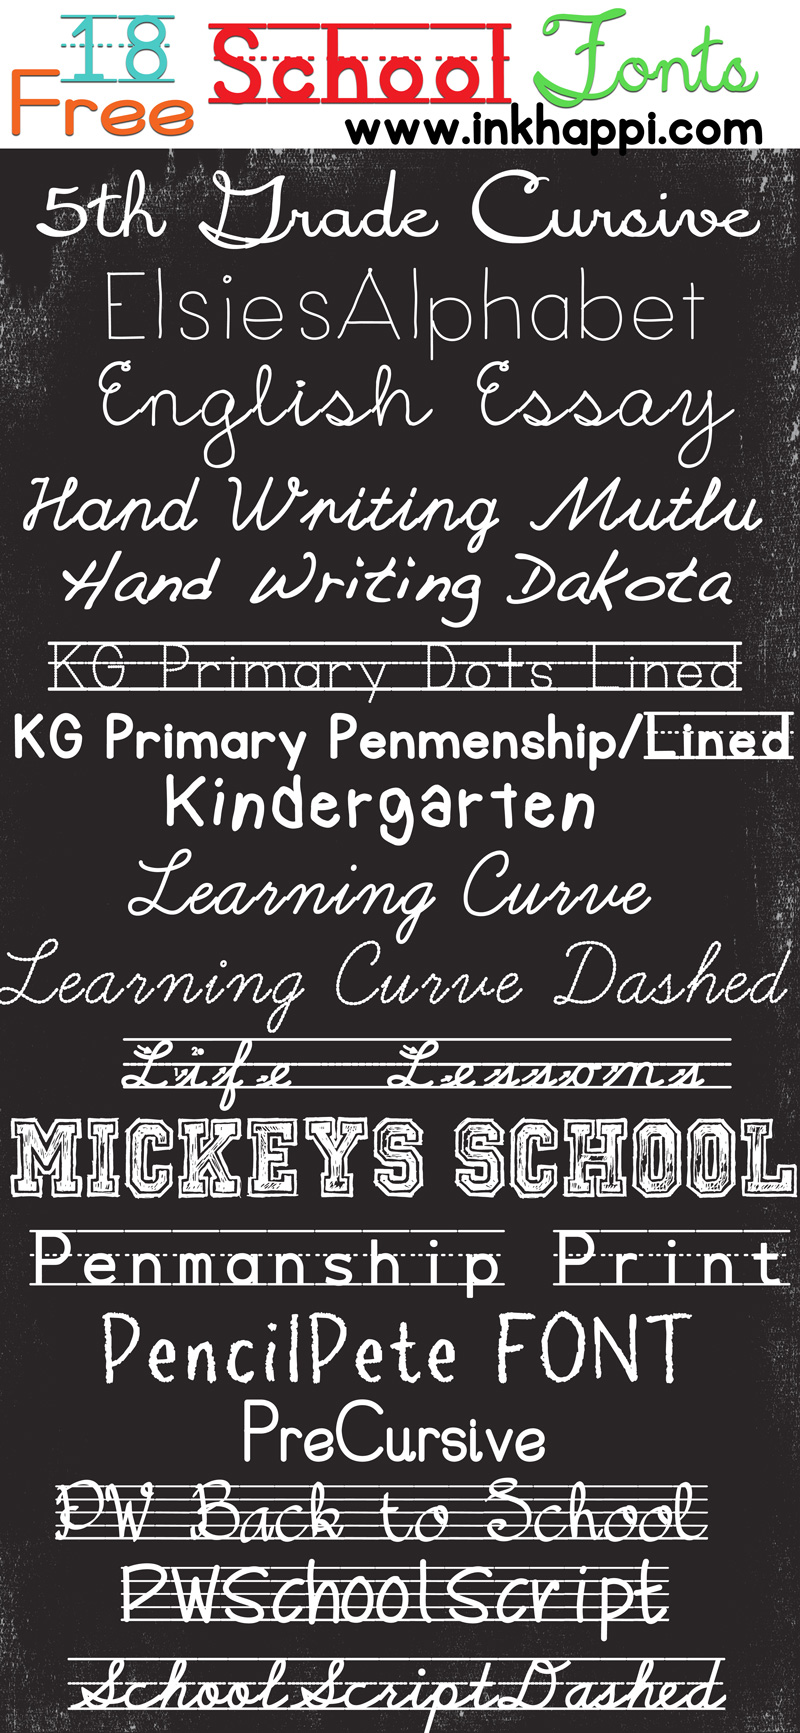 An Awesome Collection Of School Fonts And This Free Printable With A Great Message